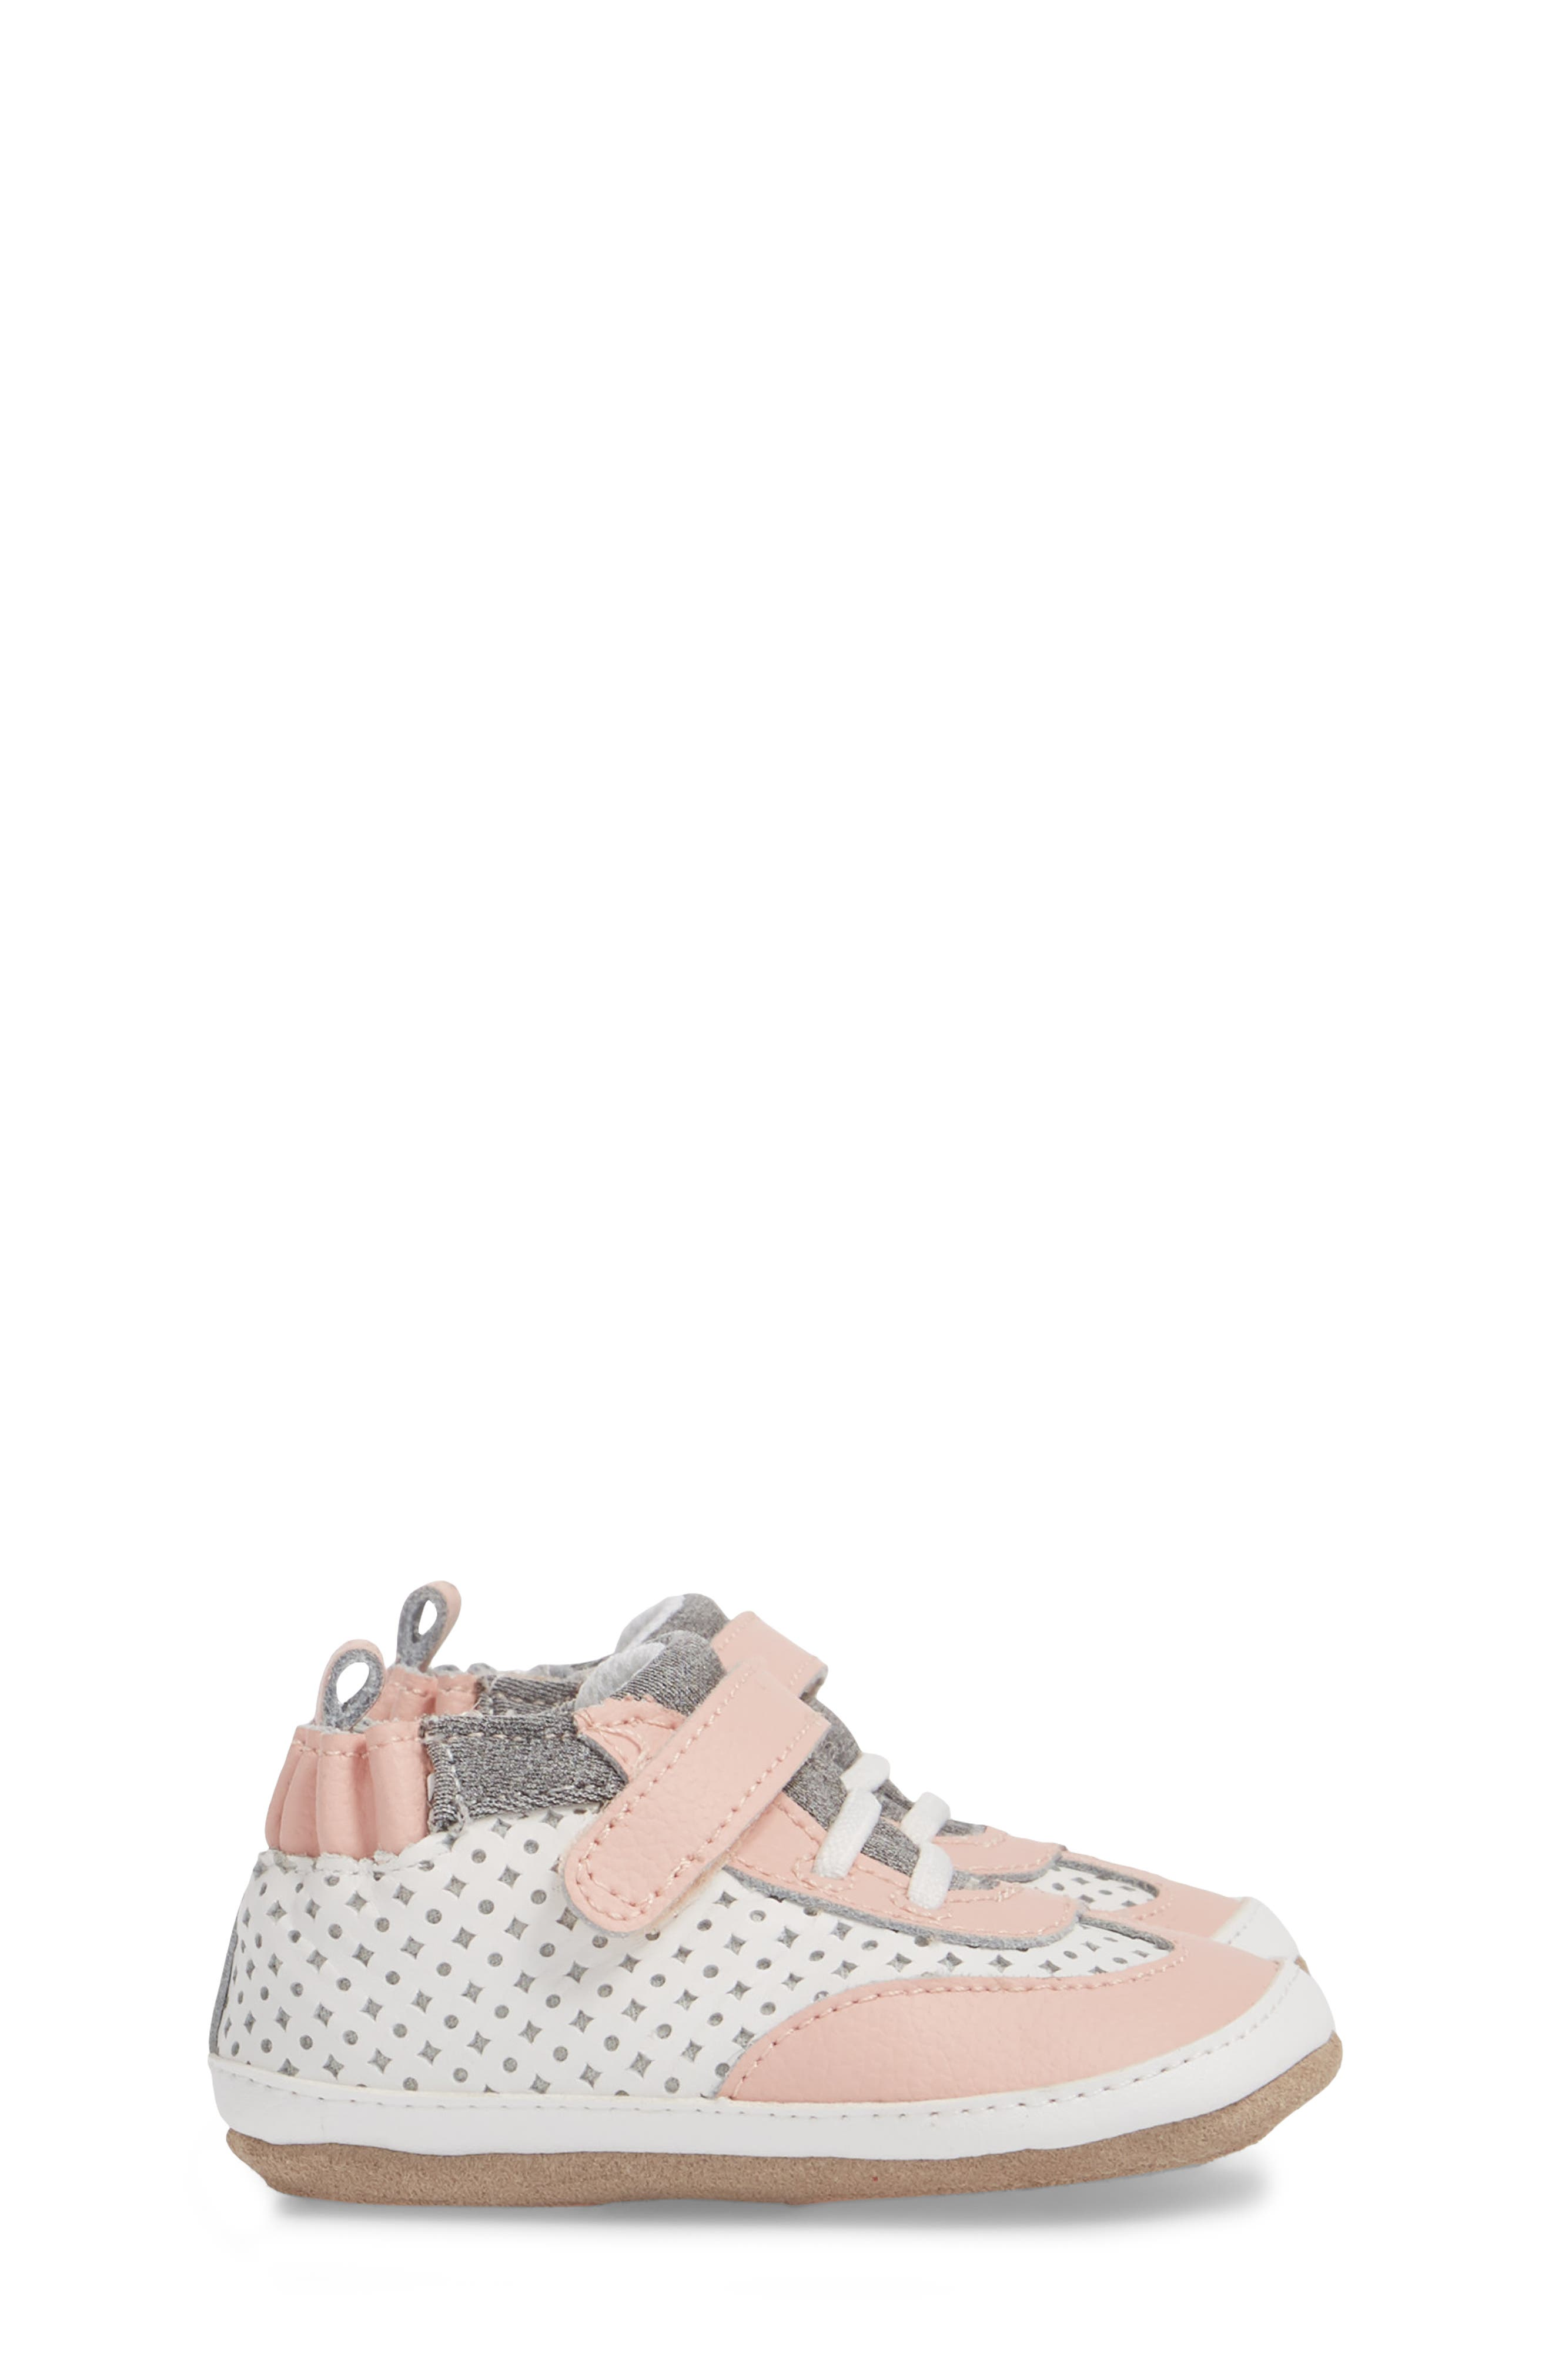 Mini Shoez Katie's Kicks Sneaker,                             Alternate thumbnail 3, color,                             PINK